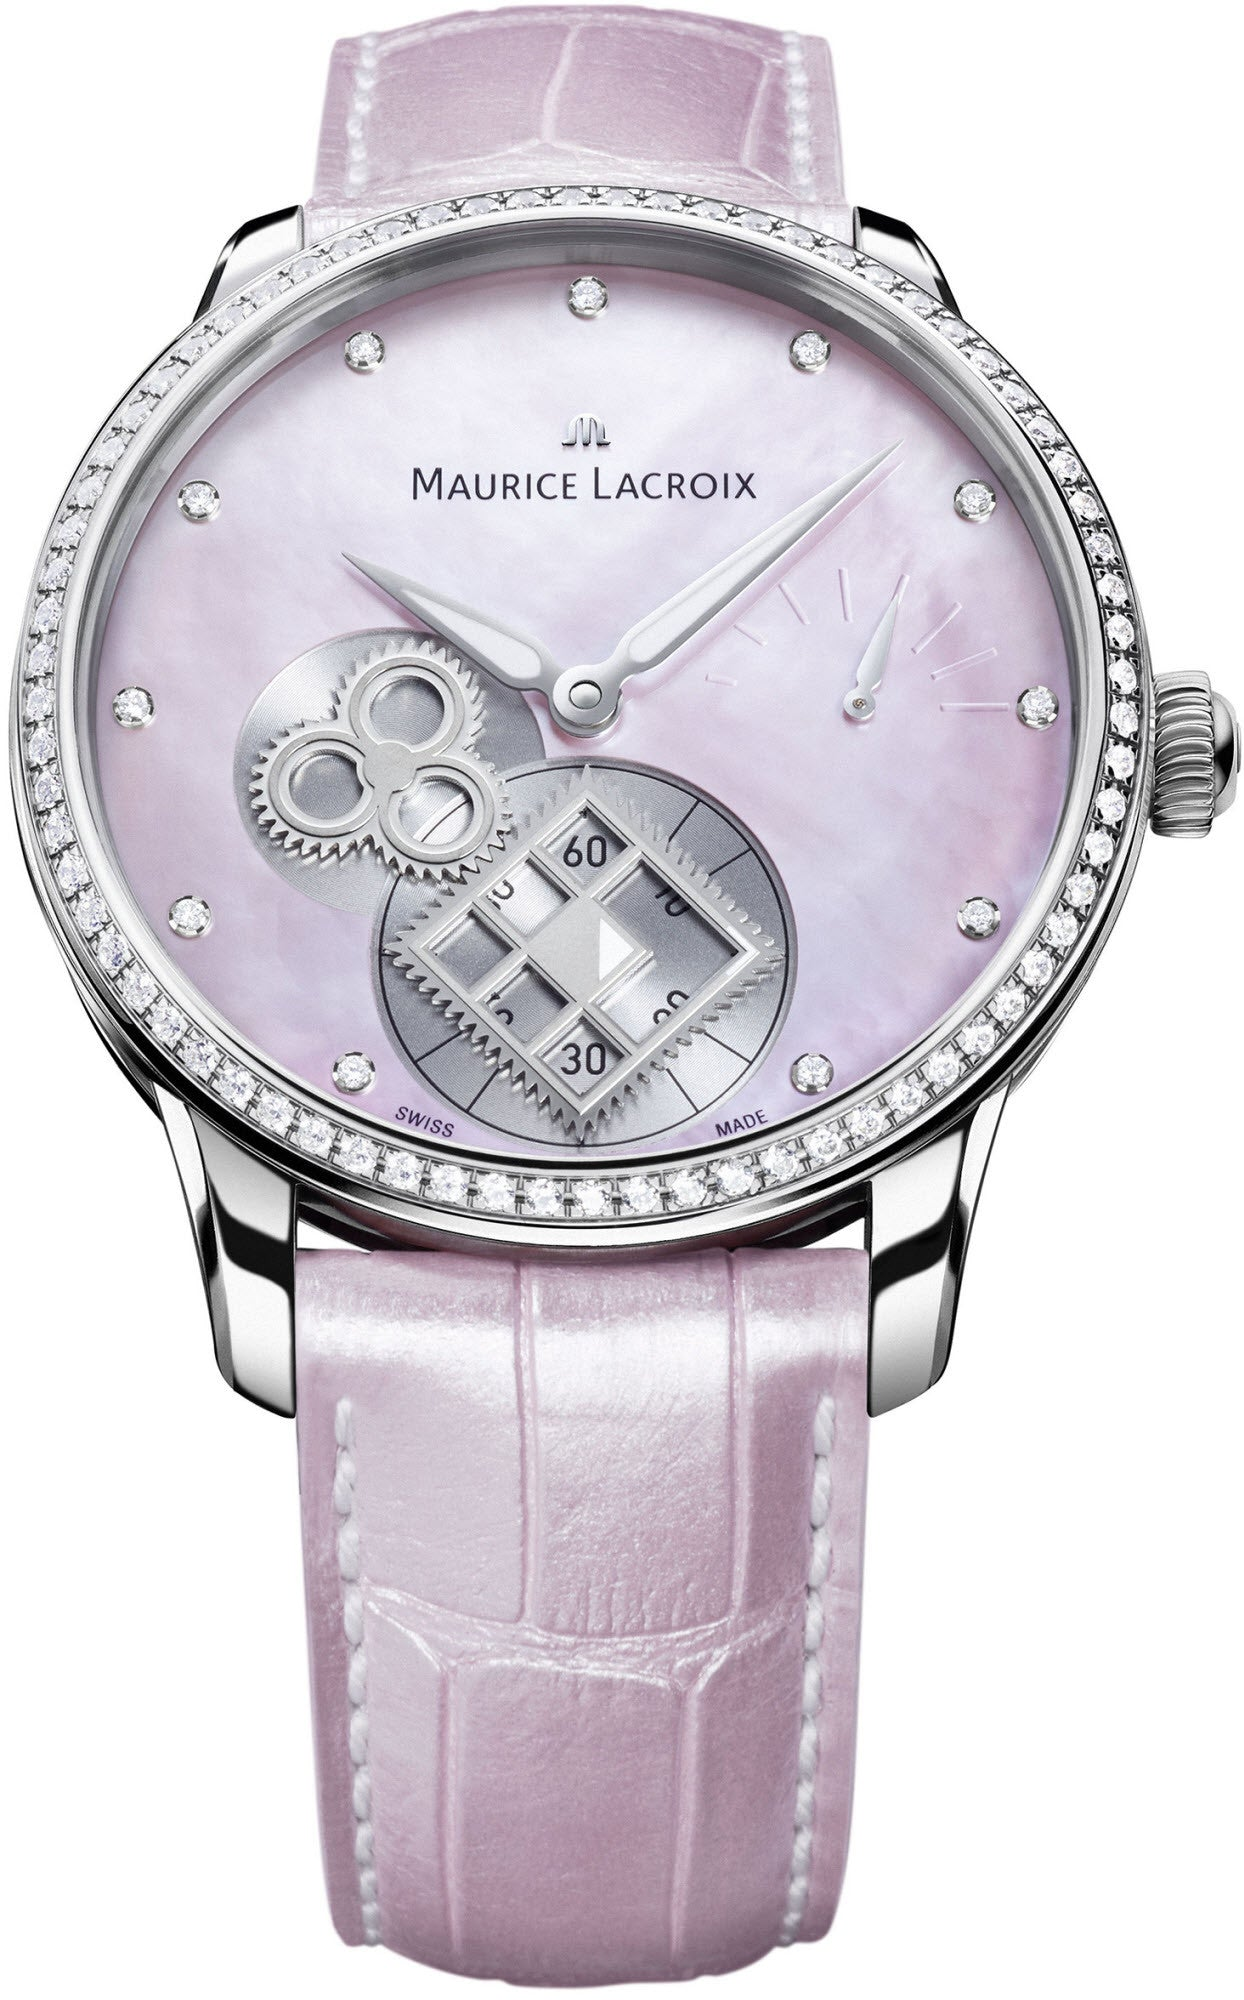 Maurice Lacroix Watch Masterpiece Square Wheel Pink Pearl